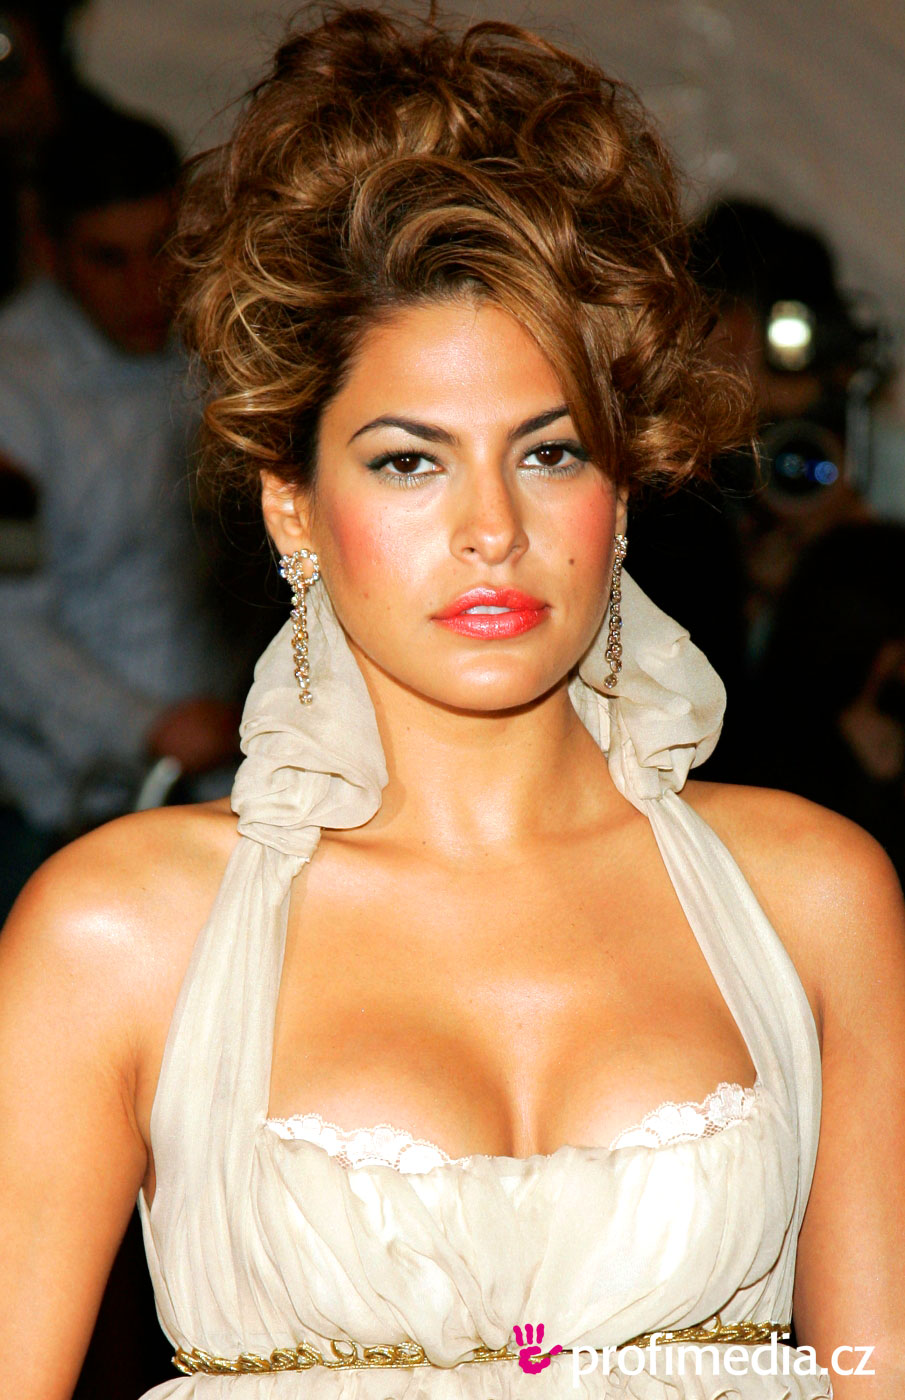 Assured, that eva mendes fur bikini above